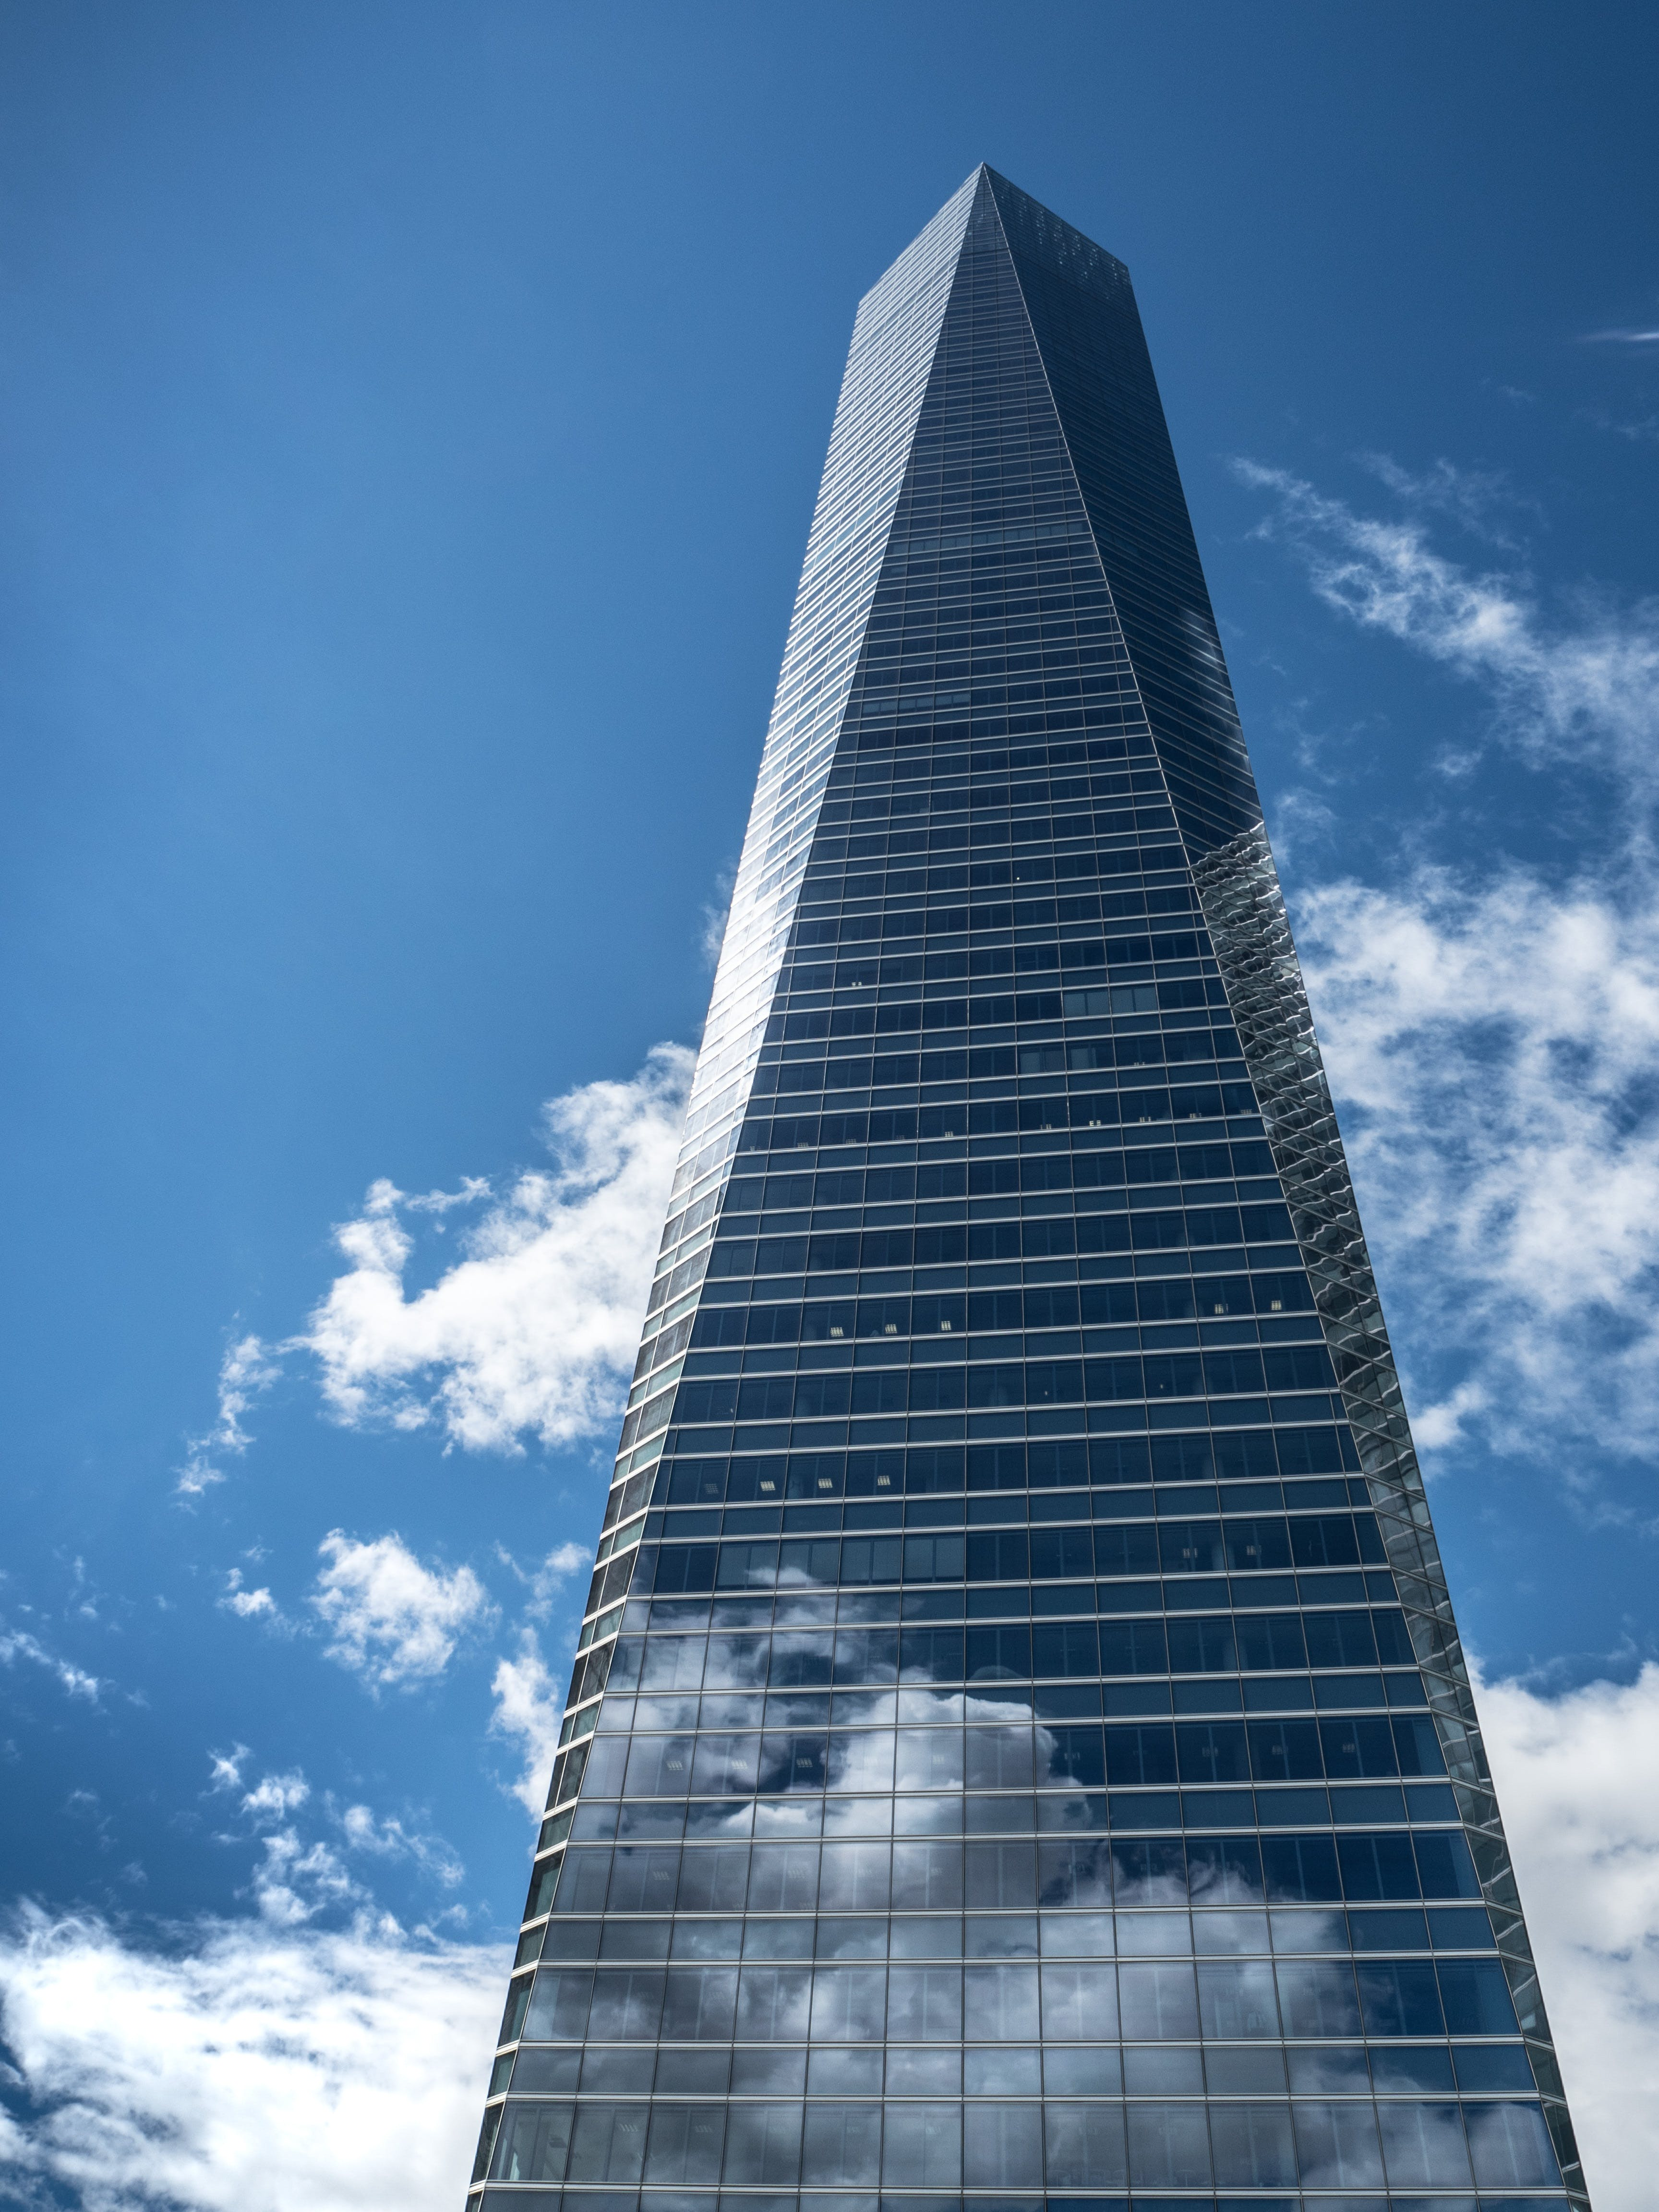 High Raise Glass Building during Daytime